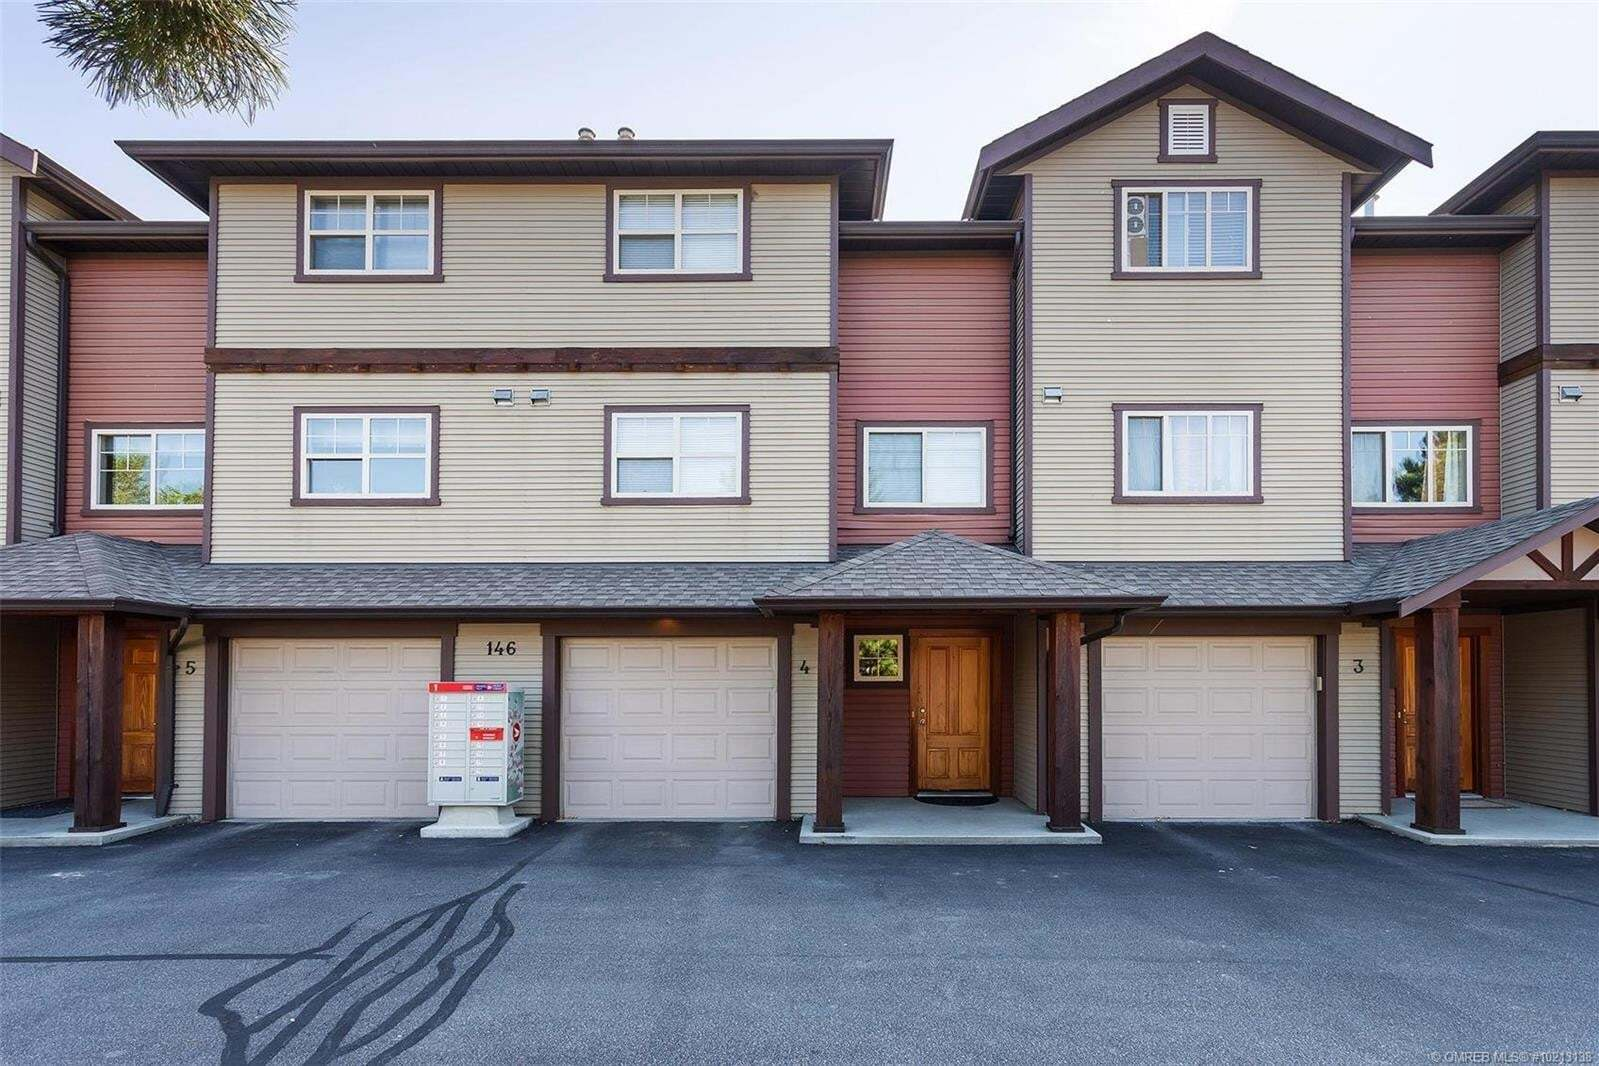 Townhouse for sale at 146 Mccurdy Rd Kelowna British Columbia - MLS: 10213138